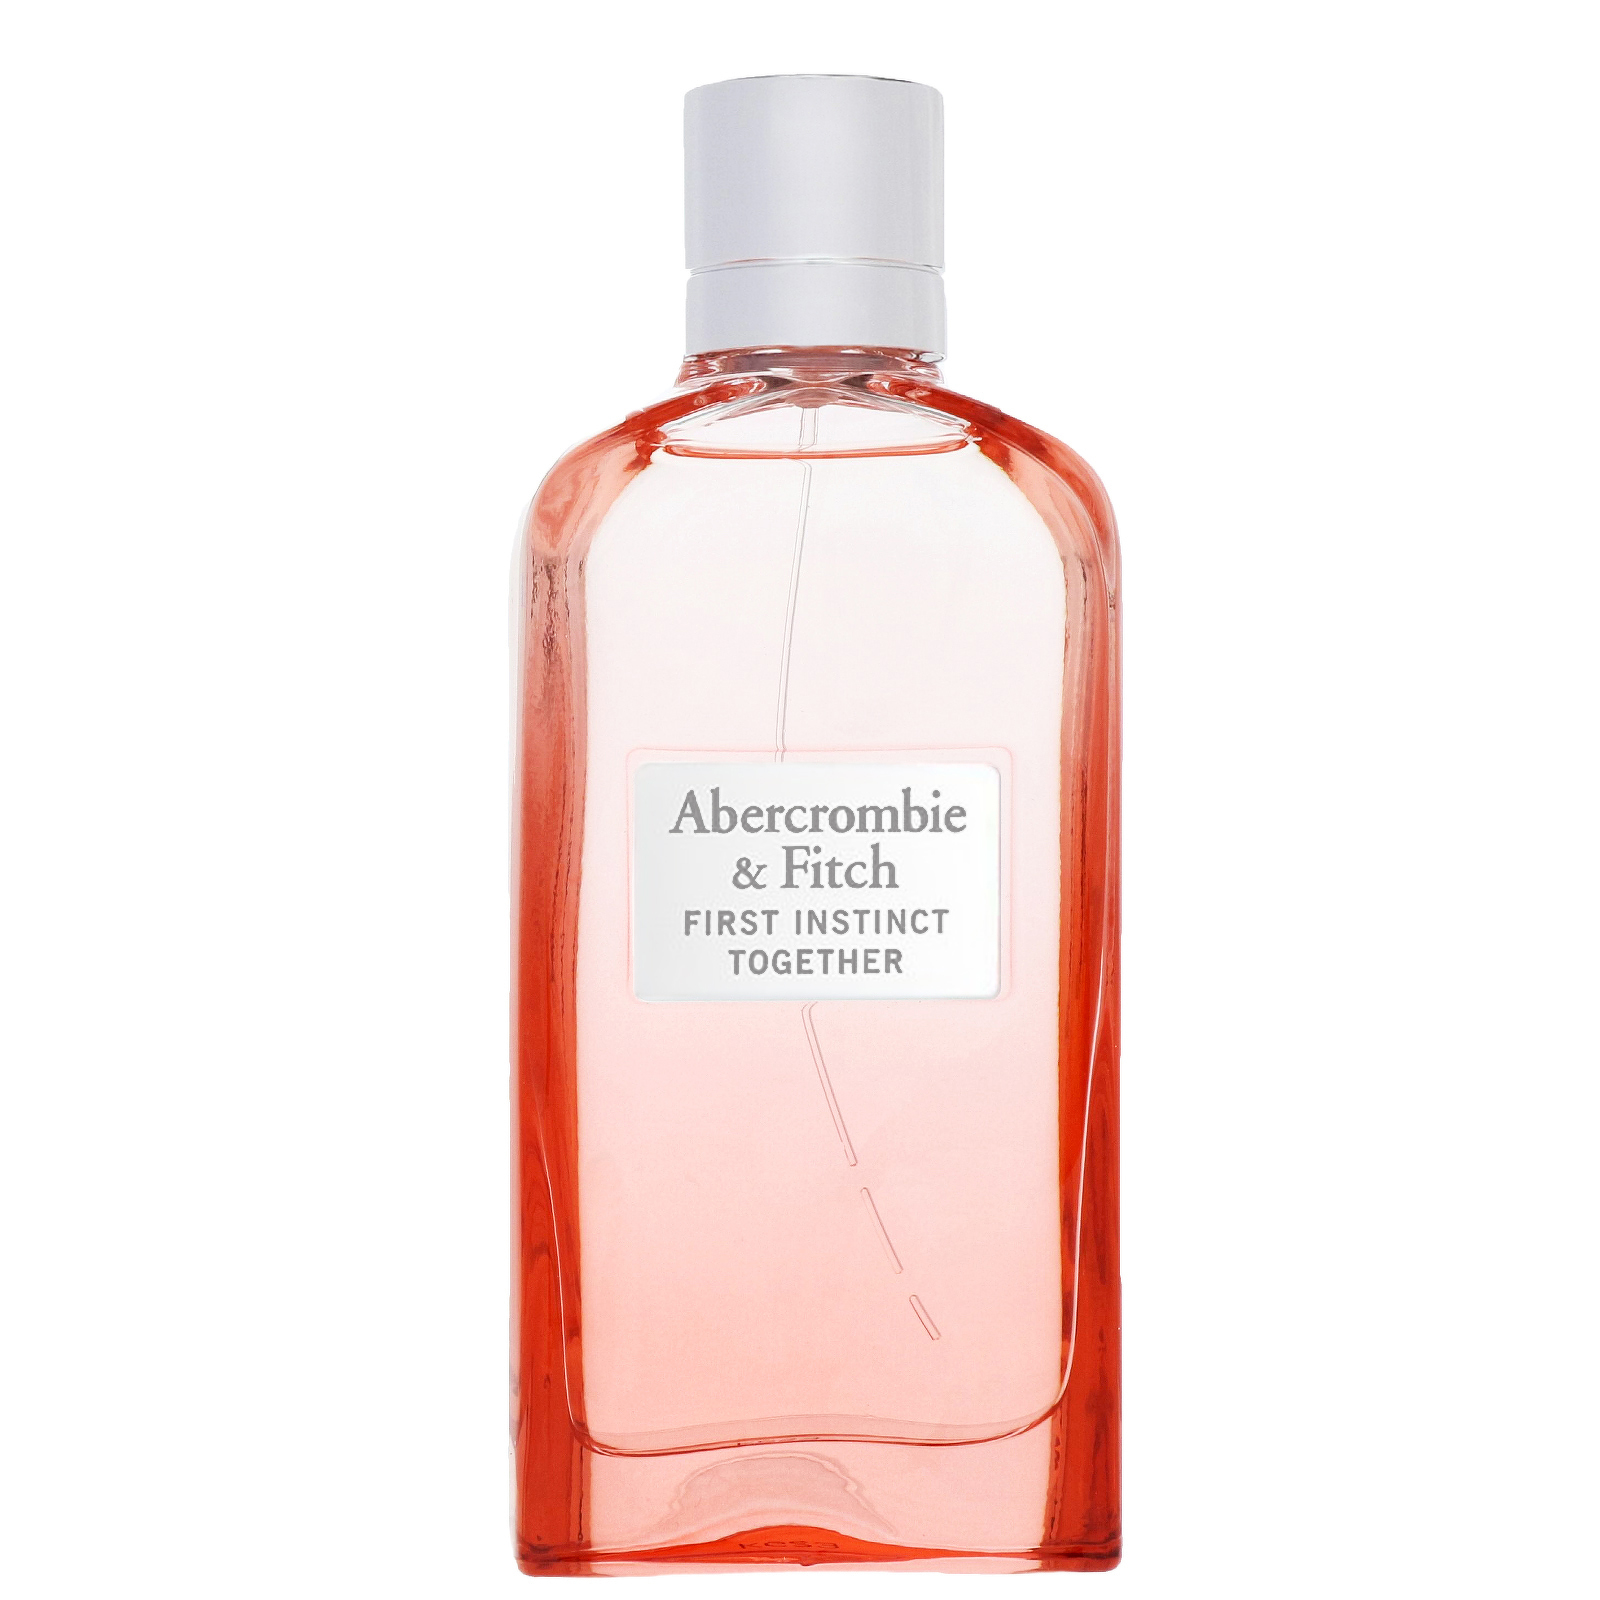 Abercrombie & Fitch First Instinct Together For Her Eau de Parfum Spray 100ml